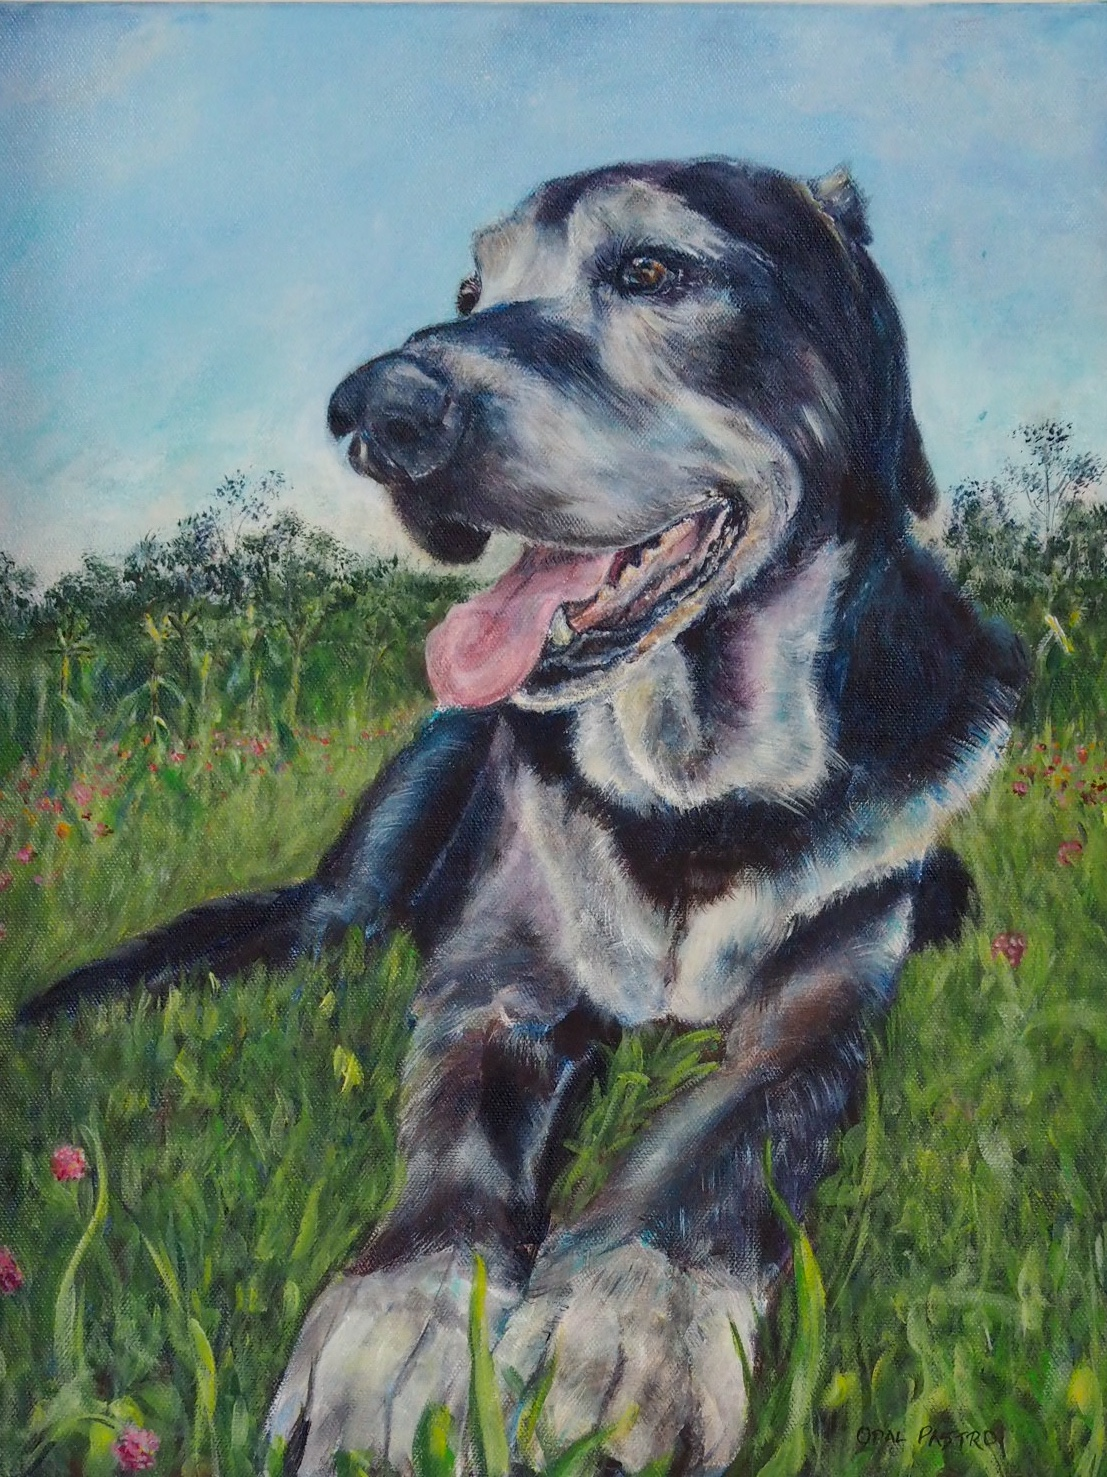 """""""I truly love it""""… - """"It's been 9 weeks weeks since Oscar left me. (I still shed a few tears each day…) But Opal you have gifted him back to me in a new way, in his portrait. """" -NatalieCommissioned as a memorial portrait to celebrate Oscar's life.Acrylic on canvas 12"""" x 16""""Brisbane, Qld, Australia"""